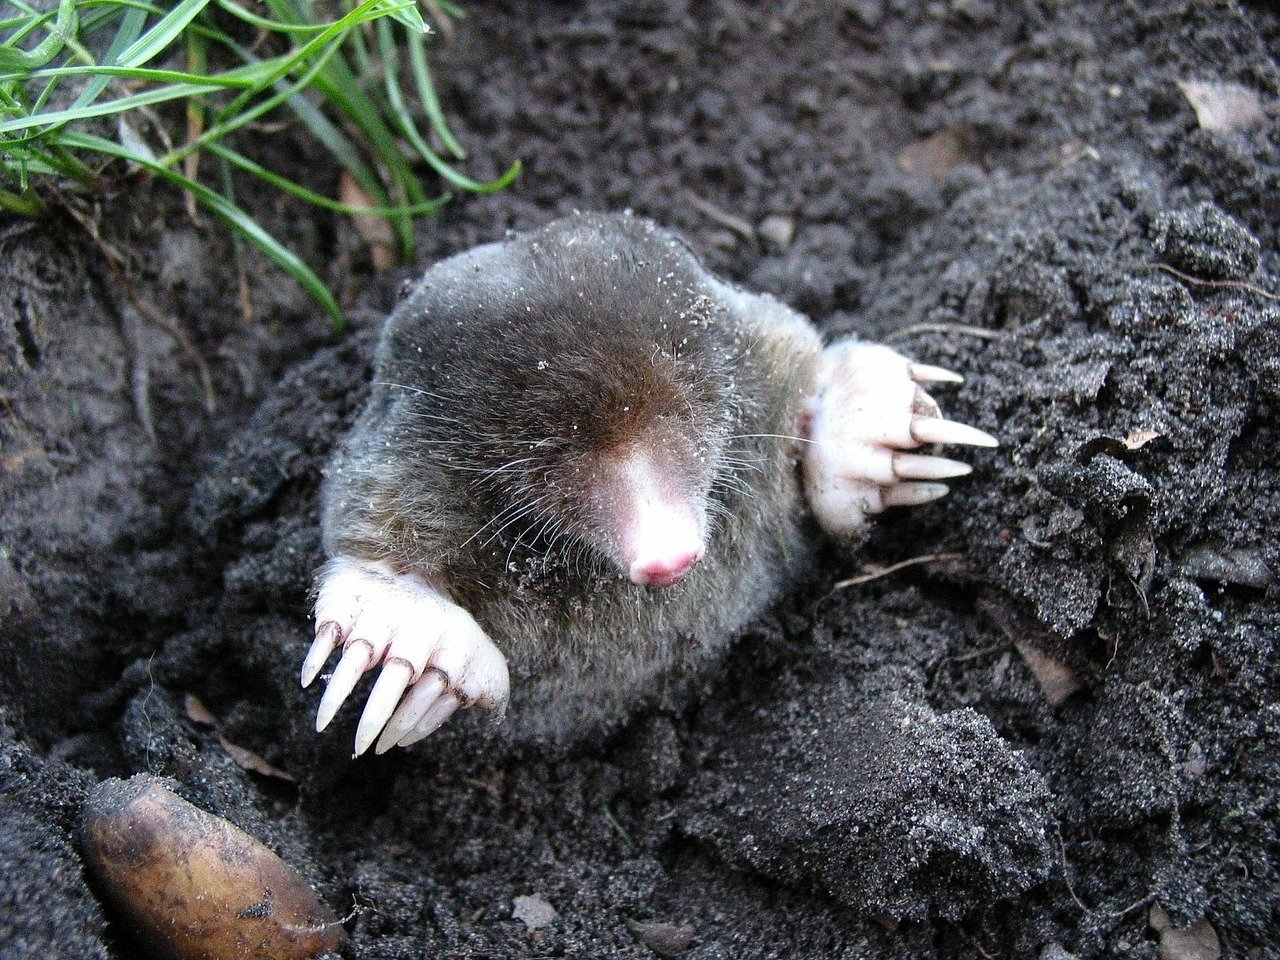 Picture of a mole digging in a garden